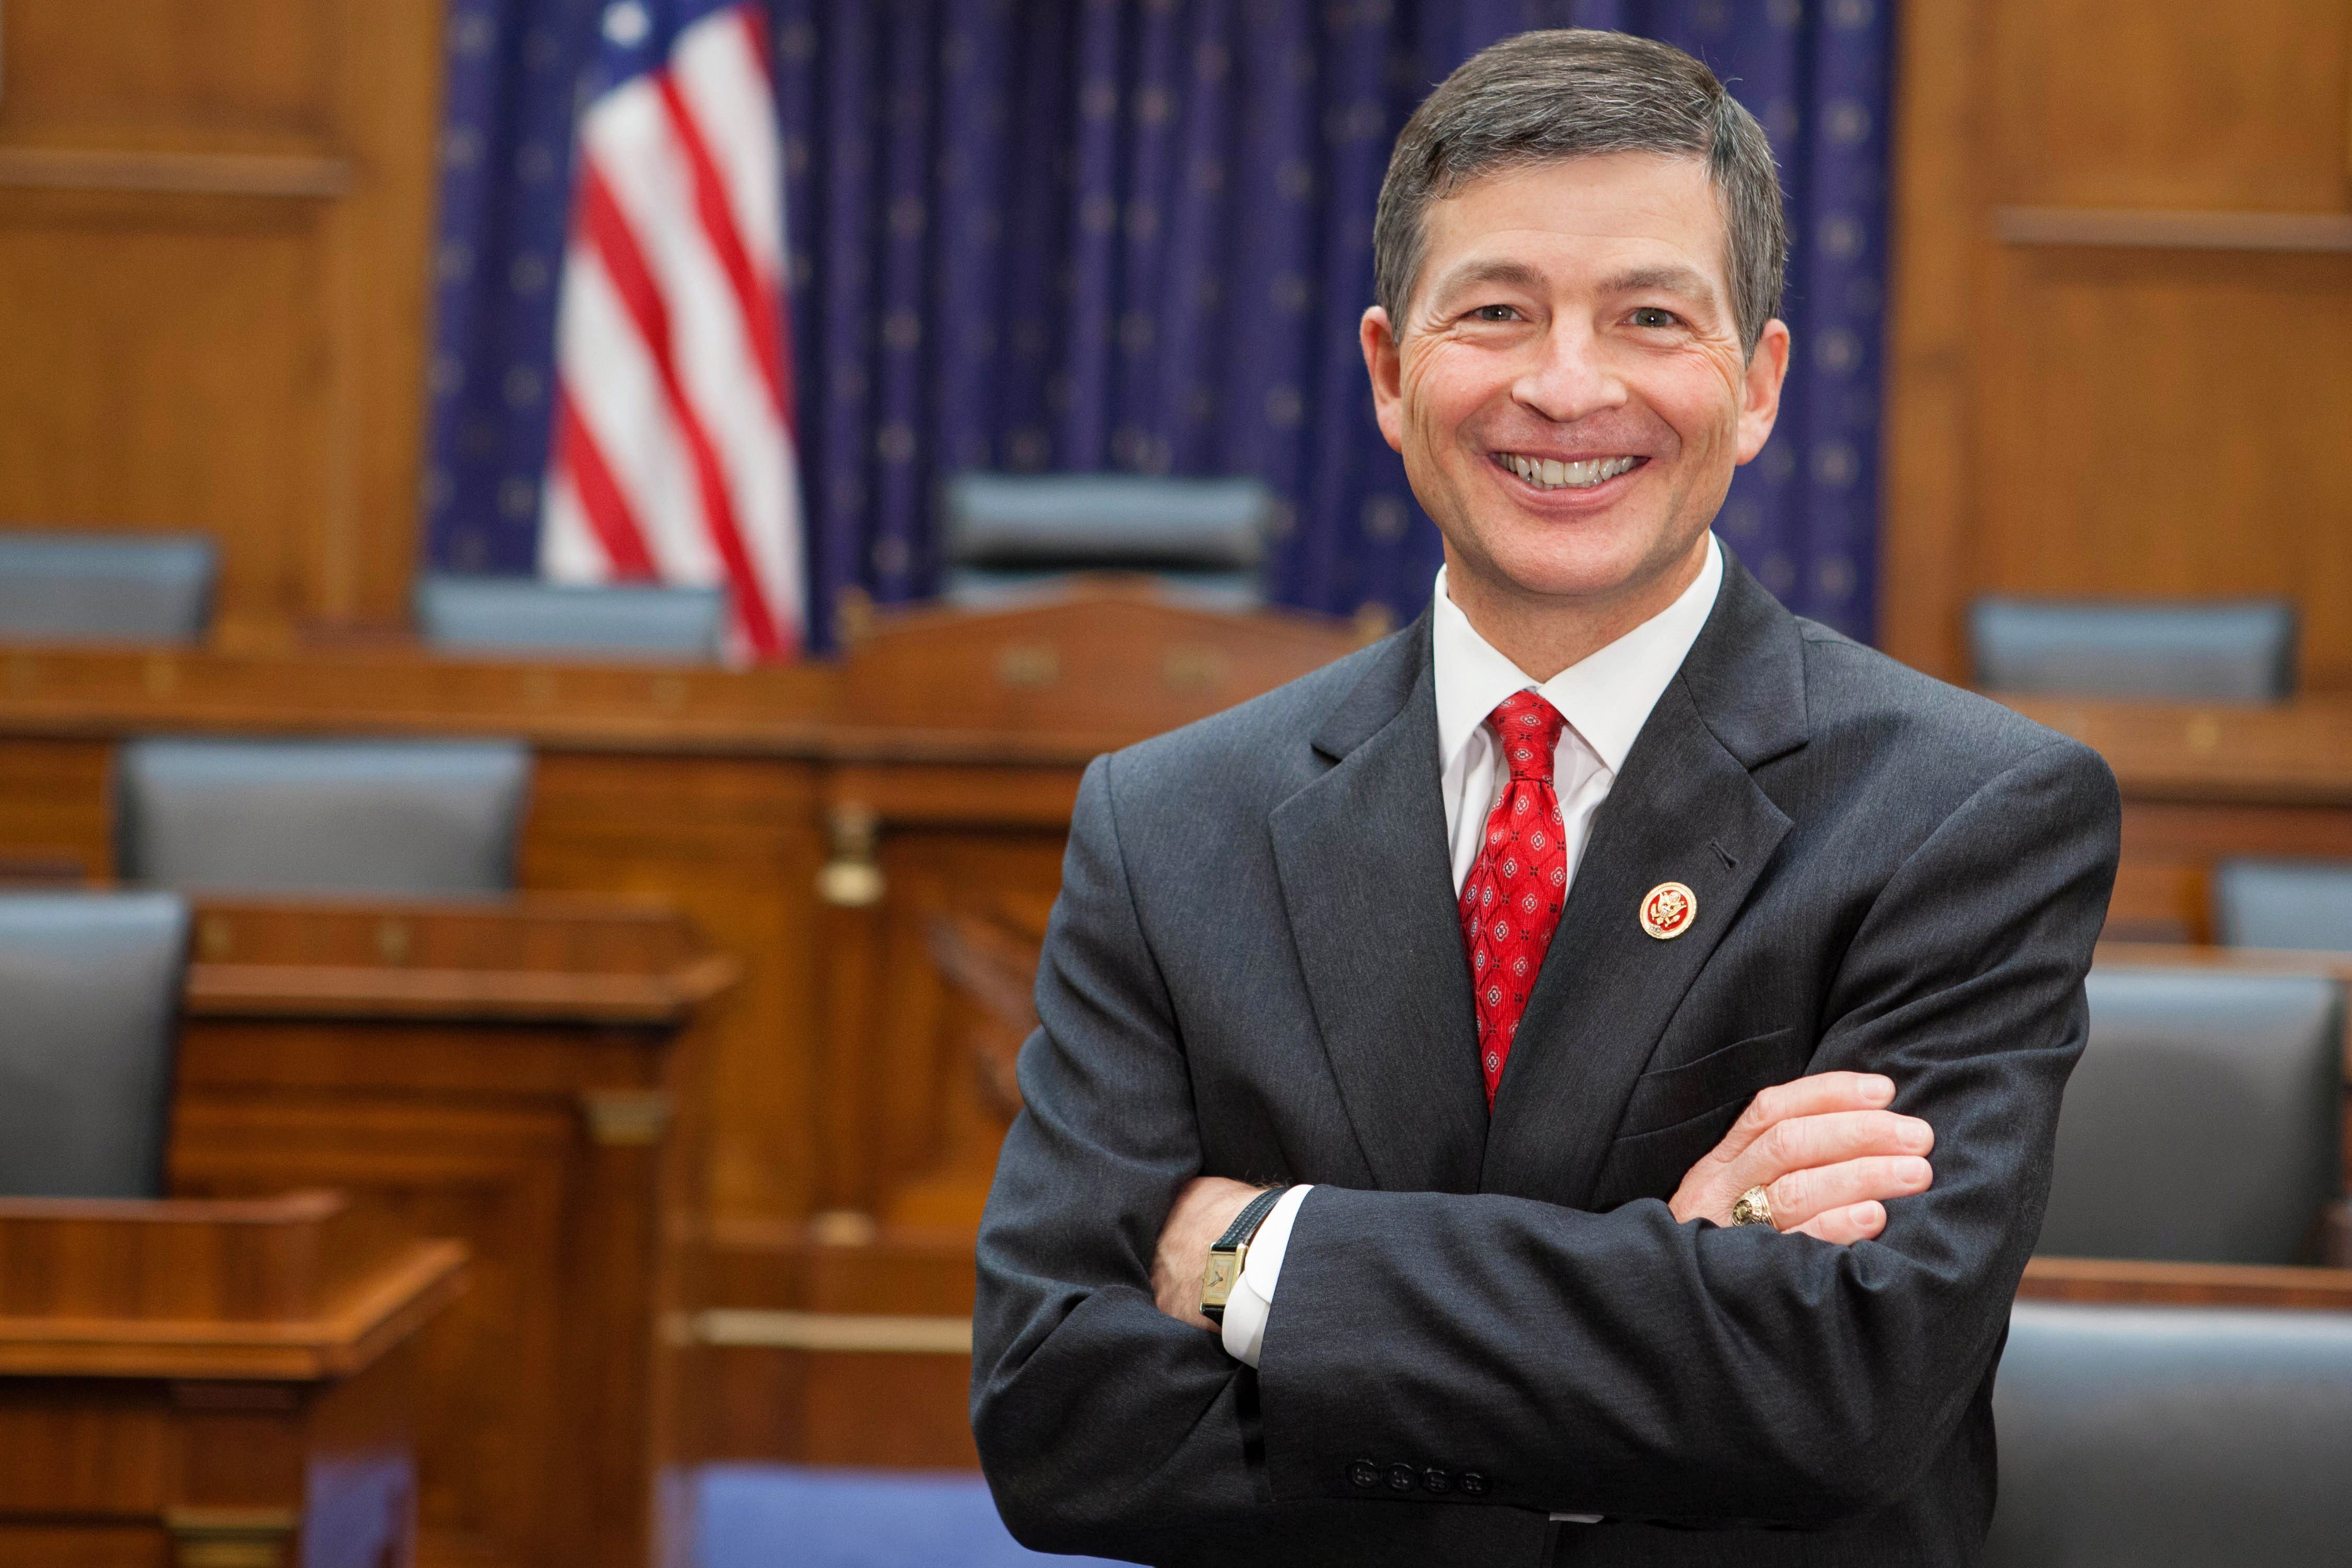 Congressman Jeb Hensarling as seen in his official photo. Courtesy: hensarling.house.gov